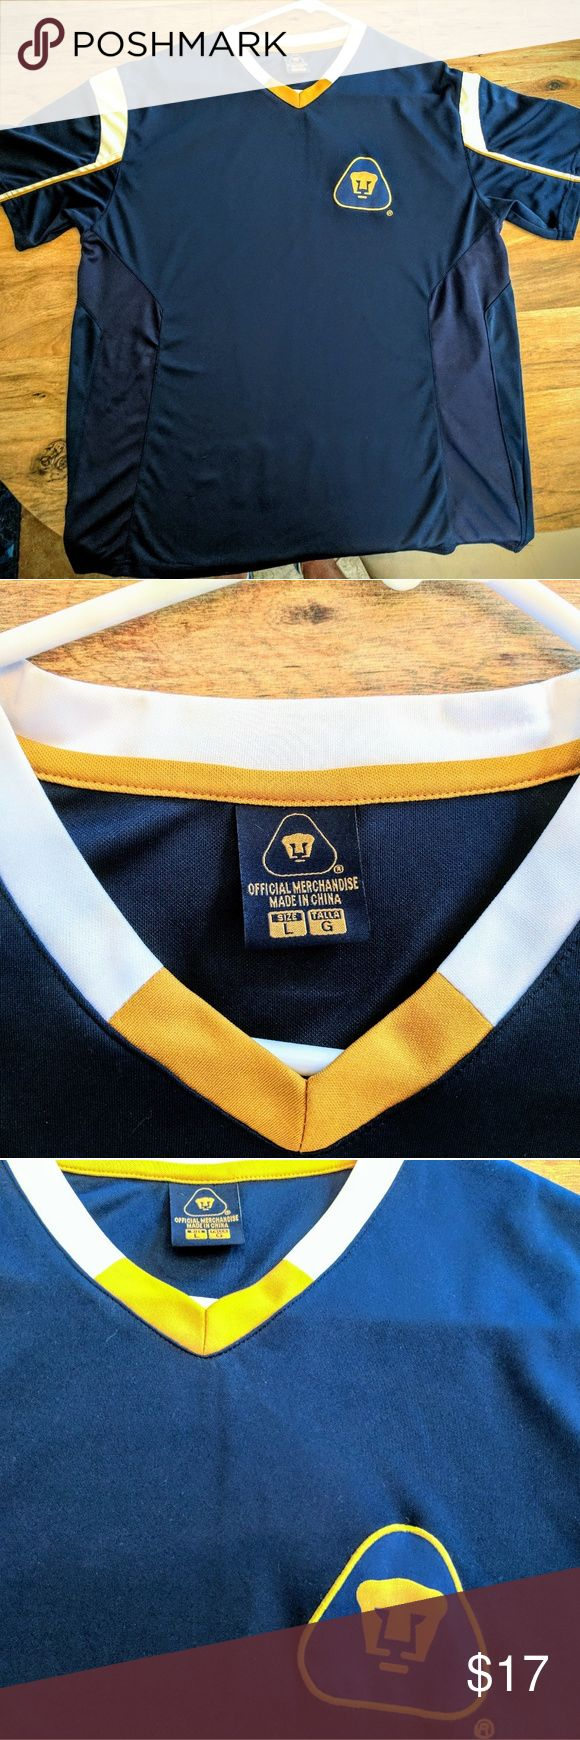 "Pumas UNAM Mexico ""FMF Oficial"" Soccer Jersey L Beautiful PUMAS UNAM Mexico FMF Soccer Jersey!  Jersey features UNAM PUMAS logo on upper right of chest, FMF Division 1a Oficial Patch on Left Sleeve.  On the lower back features large ""PUMAS"" in gold writing with Pumas UNAM logo in top center of the back.     Jersey is Size Large dark blue, with gold and white sleeve design and collar.  Athletic Cut Easy-Breathe material in mid-section.       Jersey is in perfect flawless condition, worn once…"